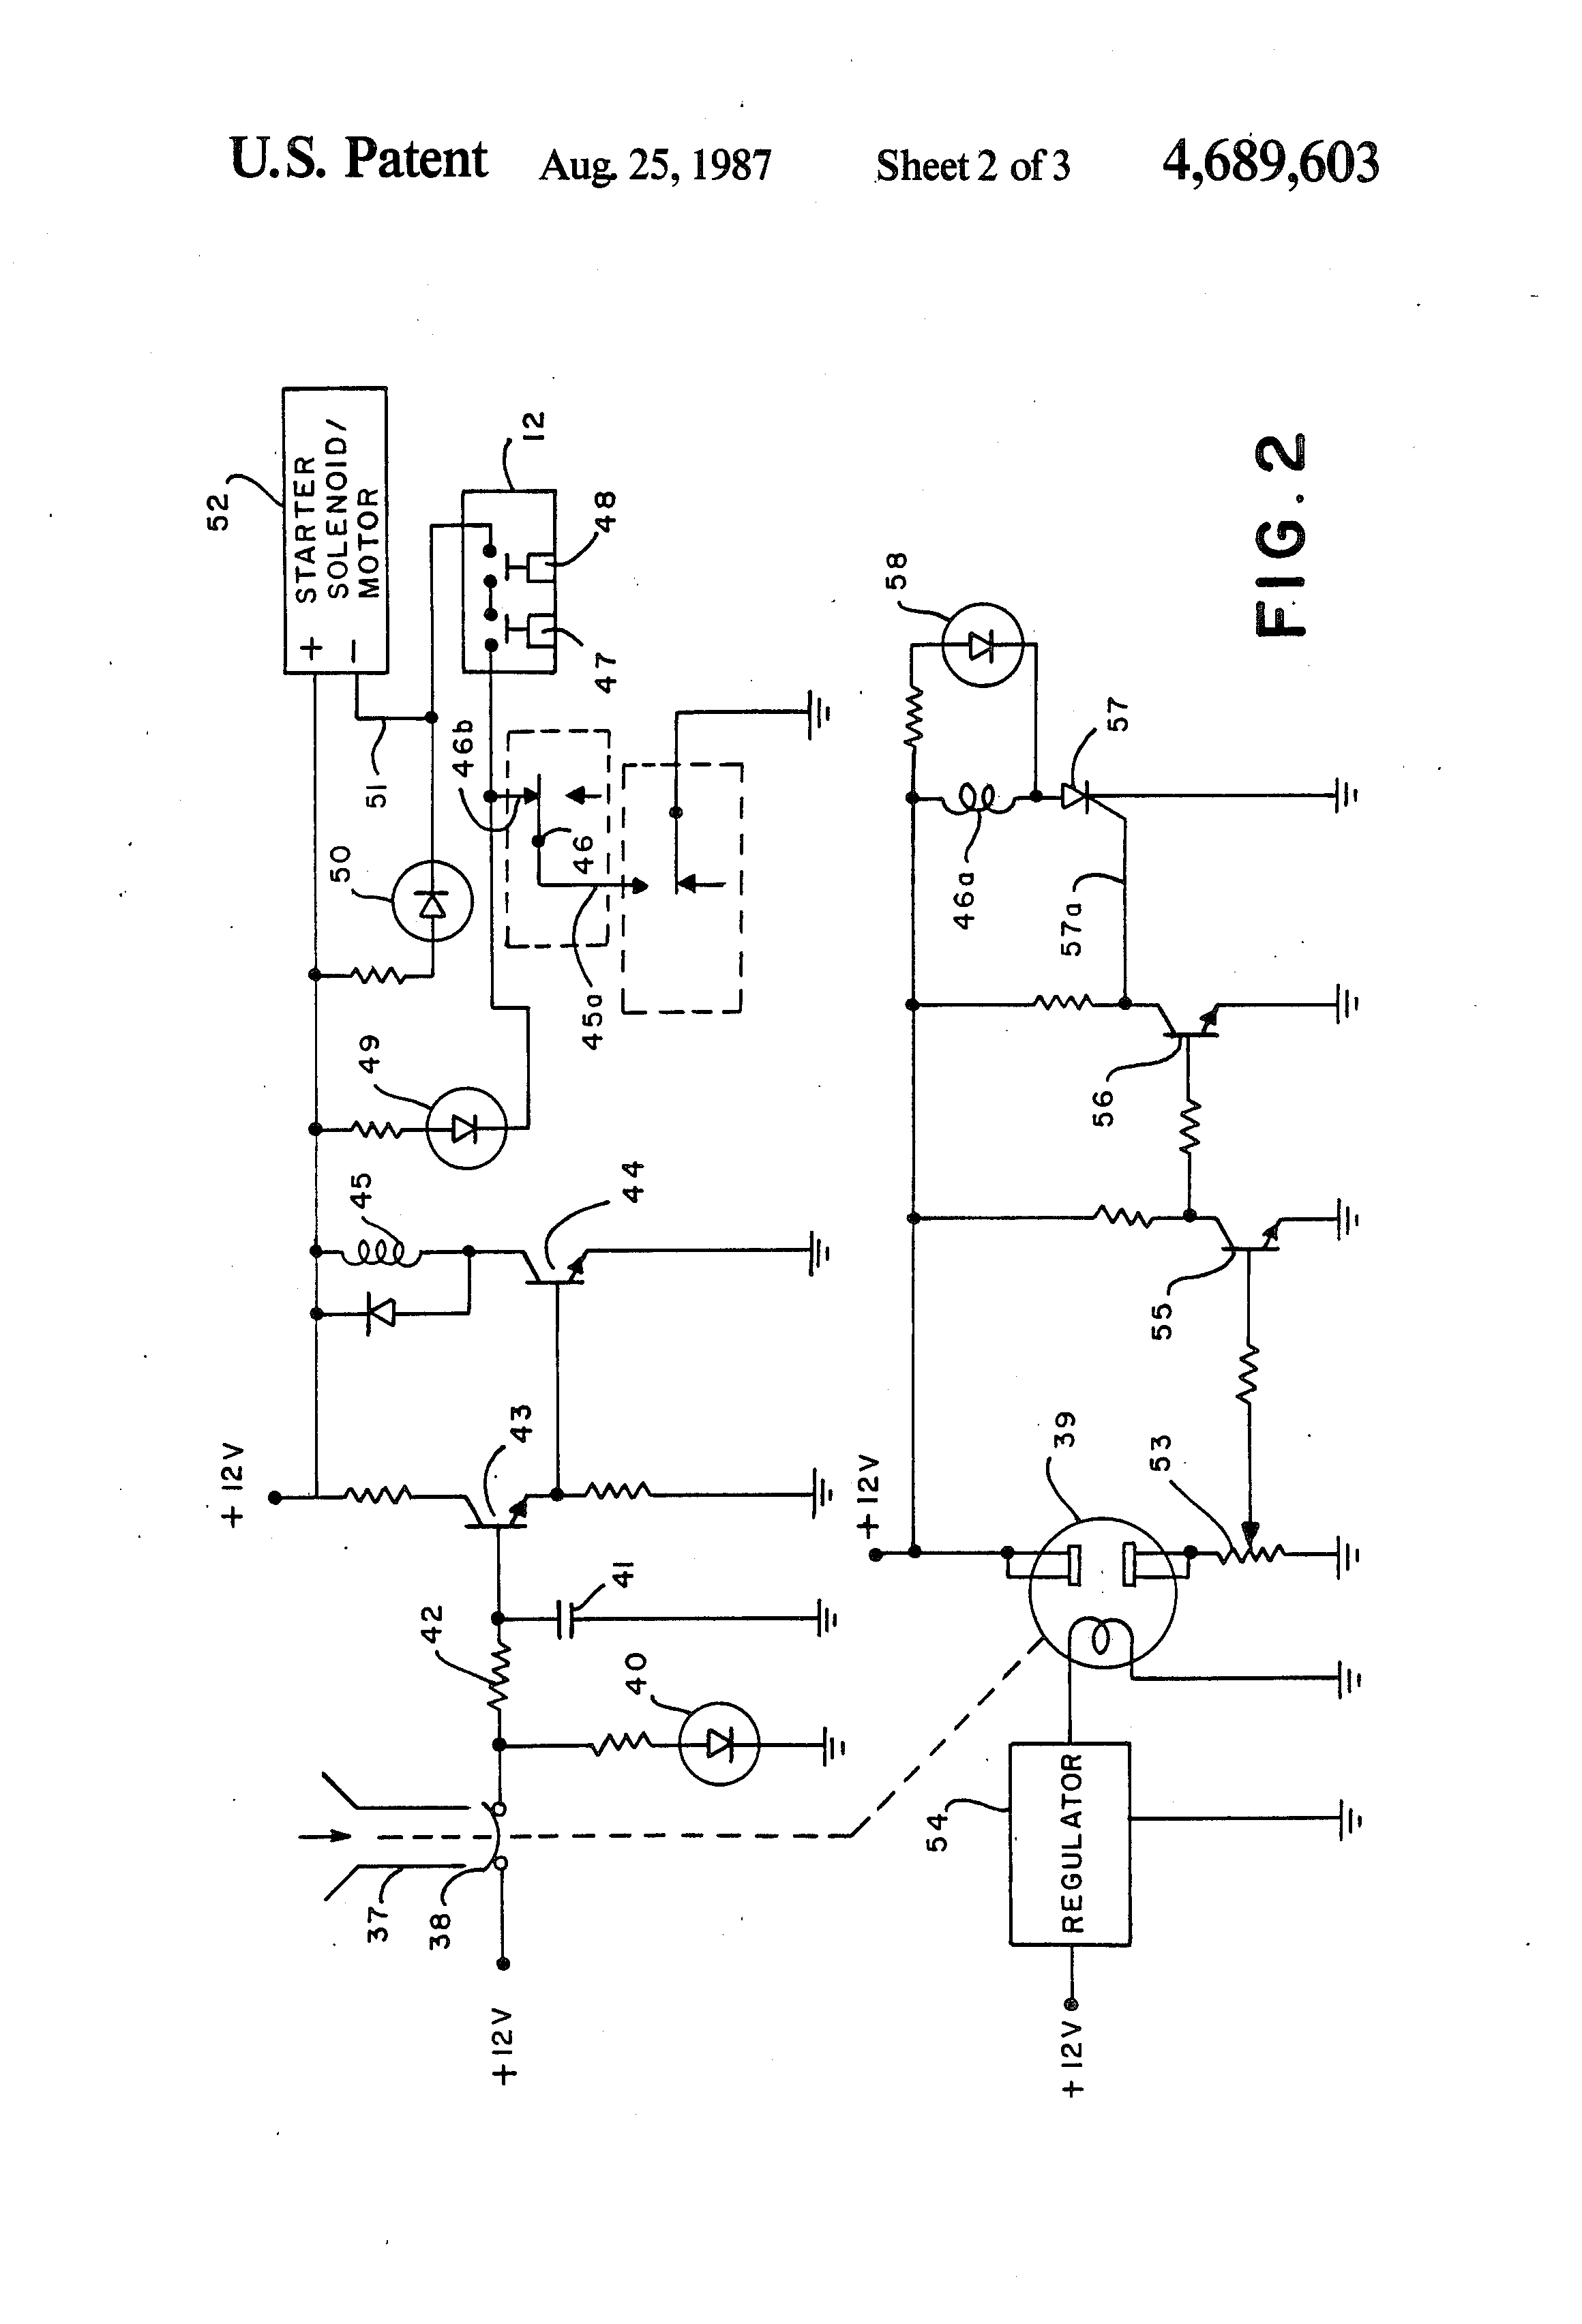 US4689603 2 draeger interlock wiring diagram on draeger download wirning diagrams  at aneh.co